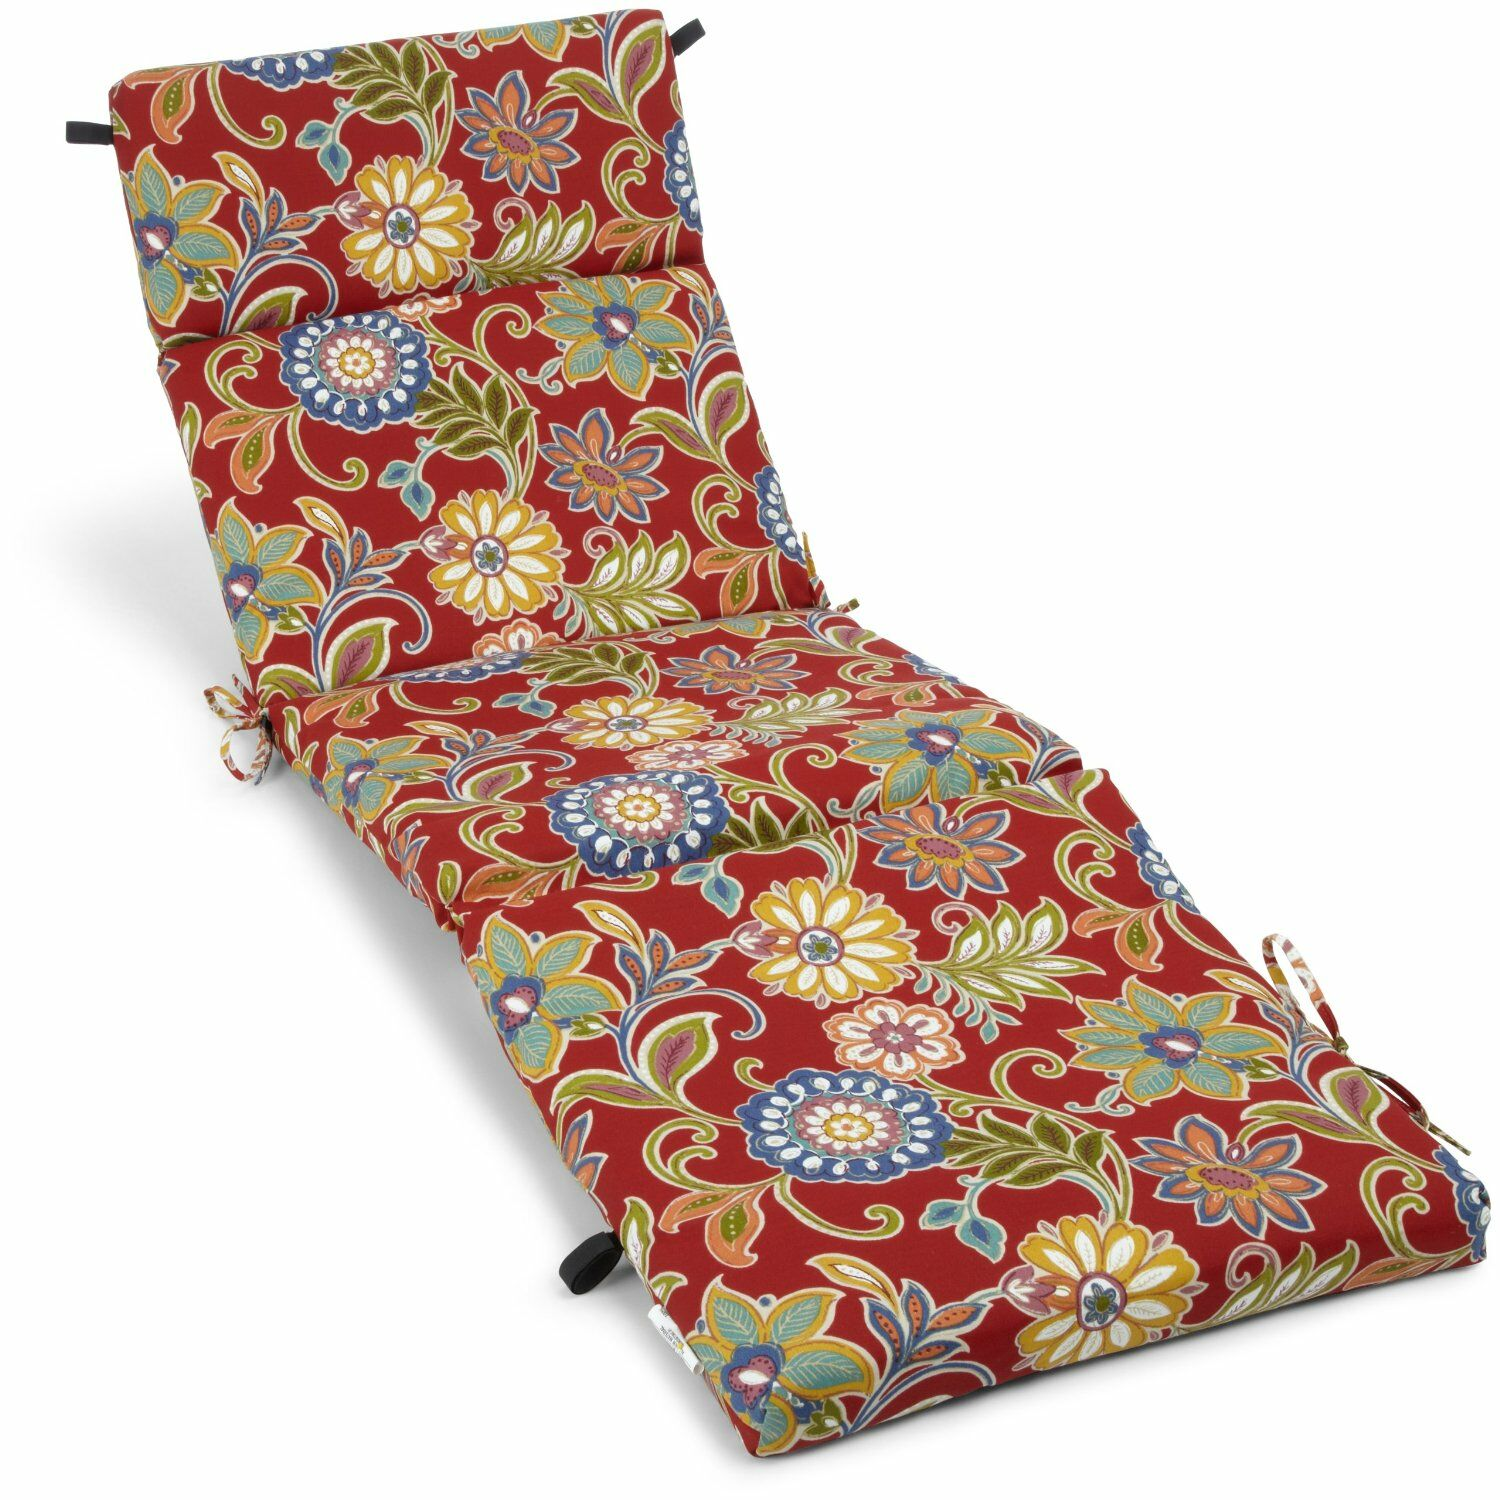 Indoor/Outdoor Chaise Lounge Cushion Fabric: Alenia Pompeii